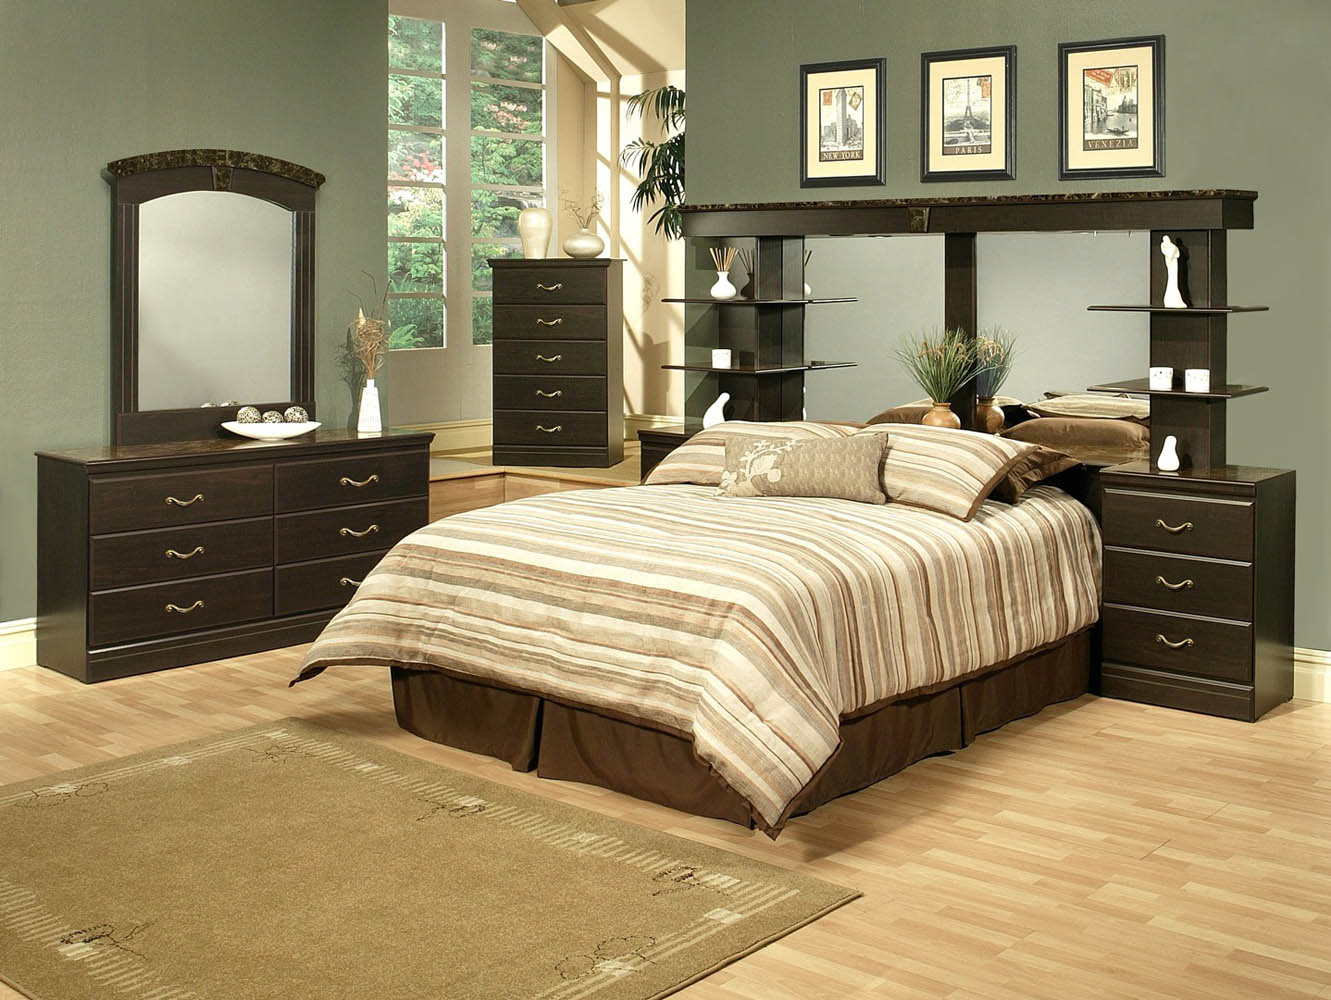 wall unit bedroom sets 4 espresso finish wall unit bedroom set 17763